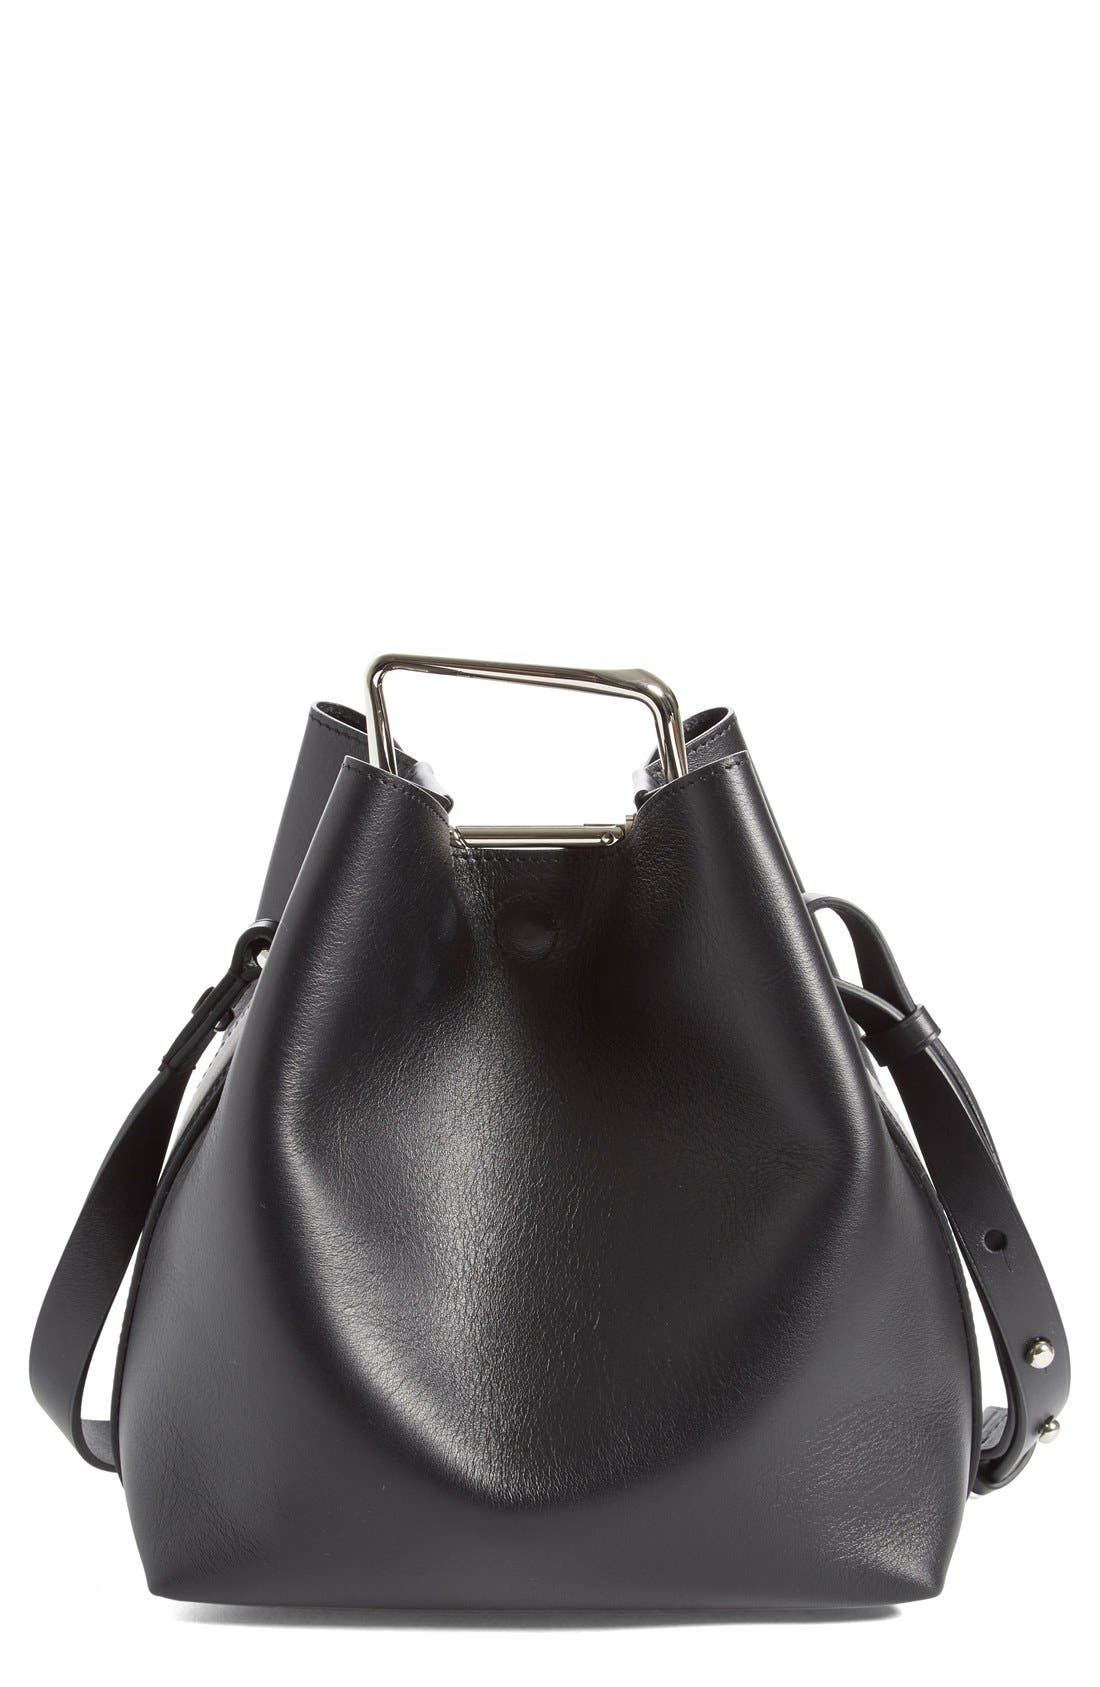 Alternate Image 1 Selected - 3.1 Phillip Lim 'Mini Quill' Leather Bucket Bag